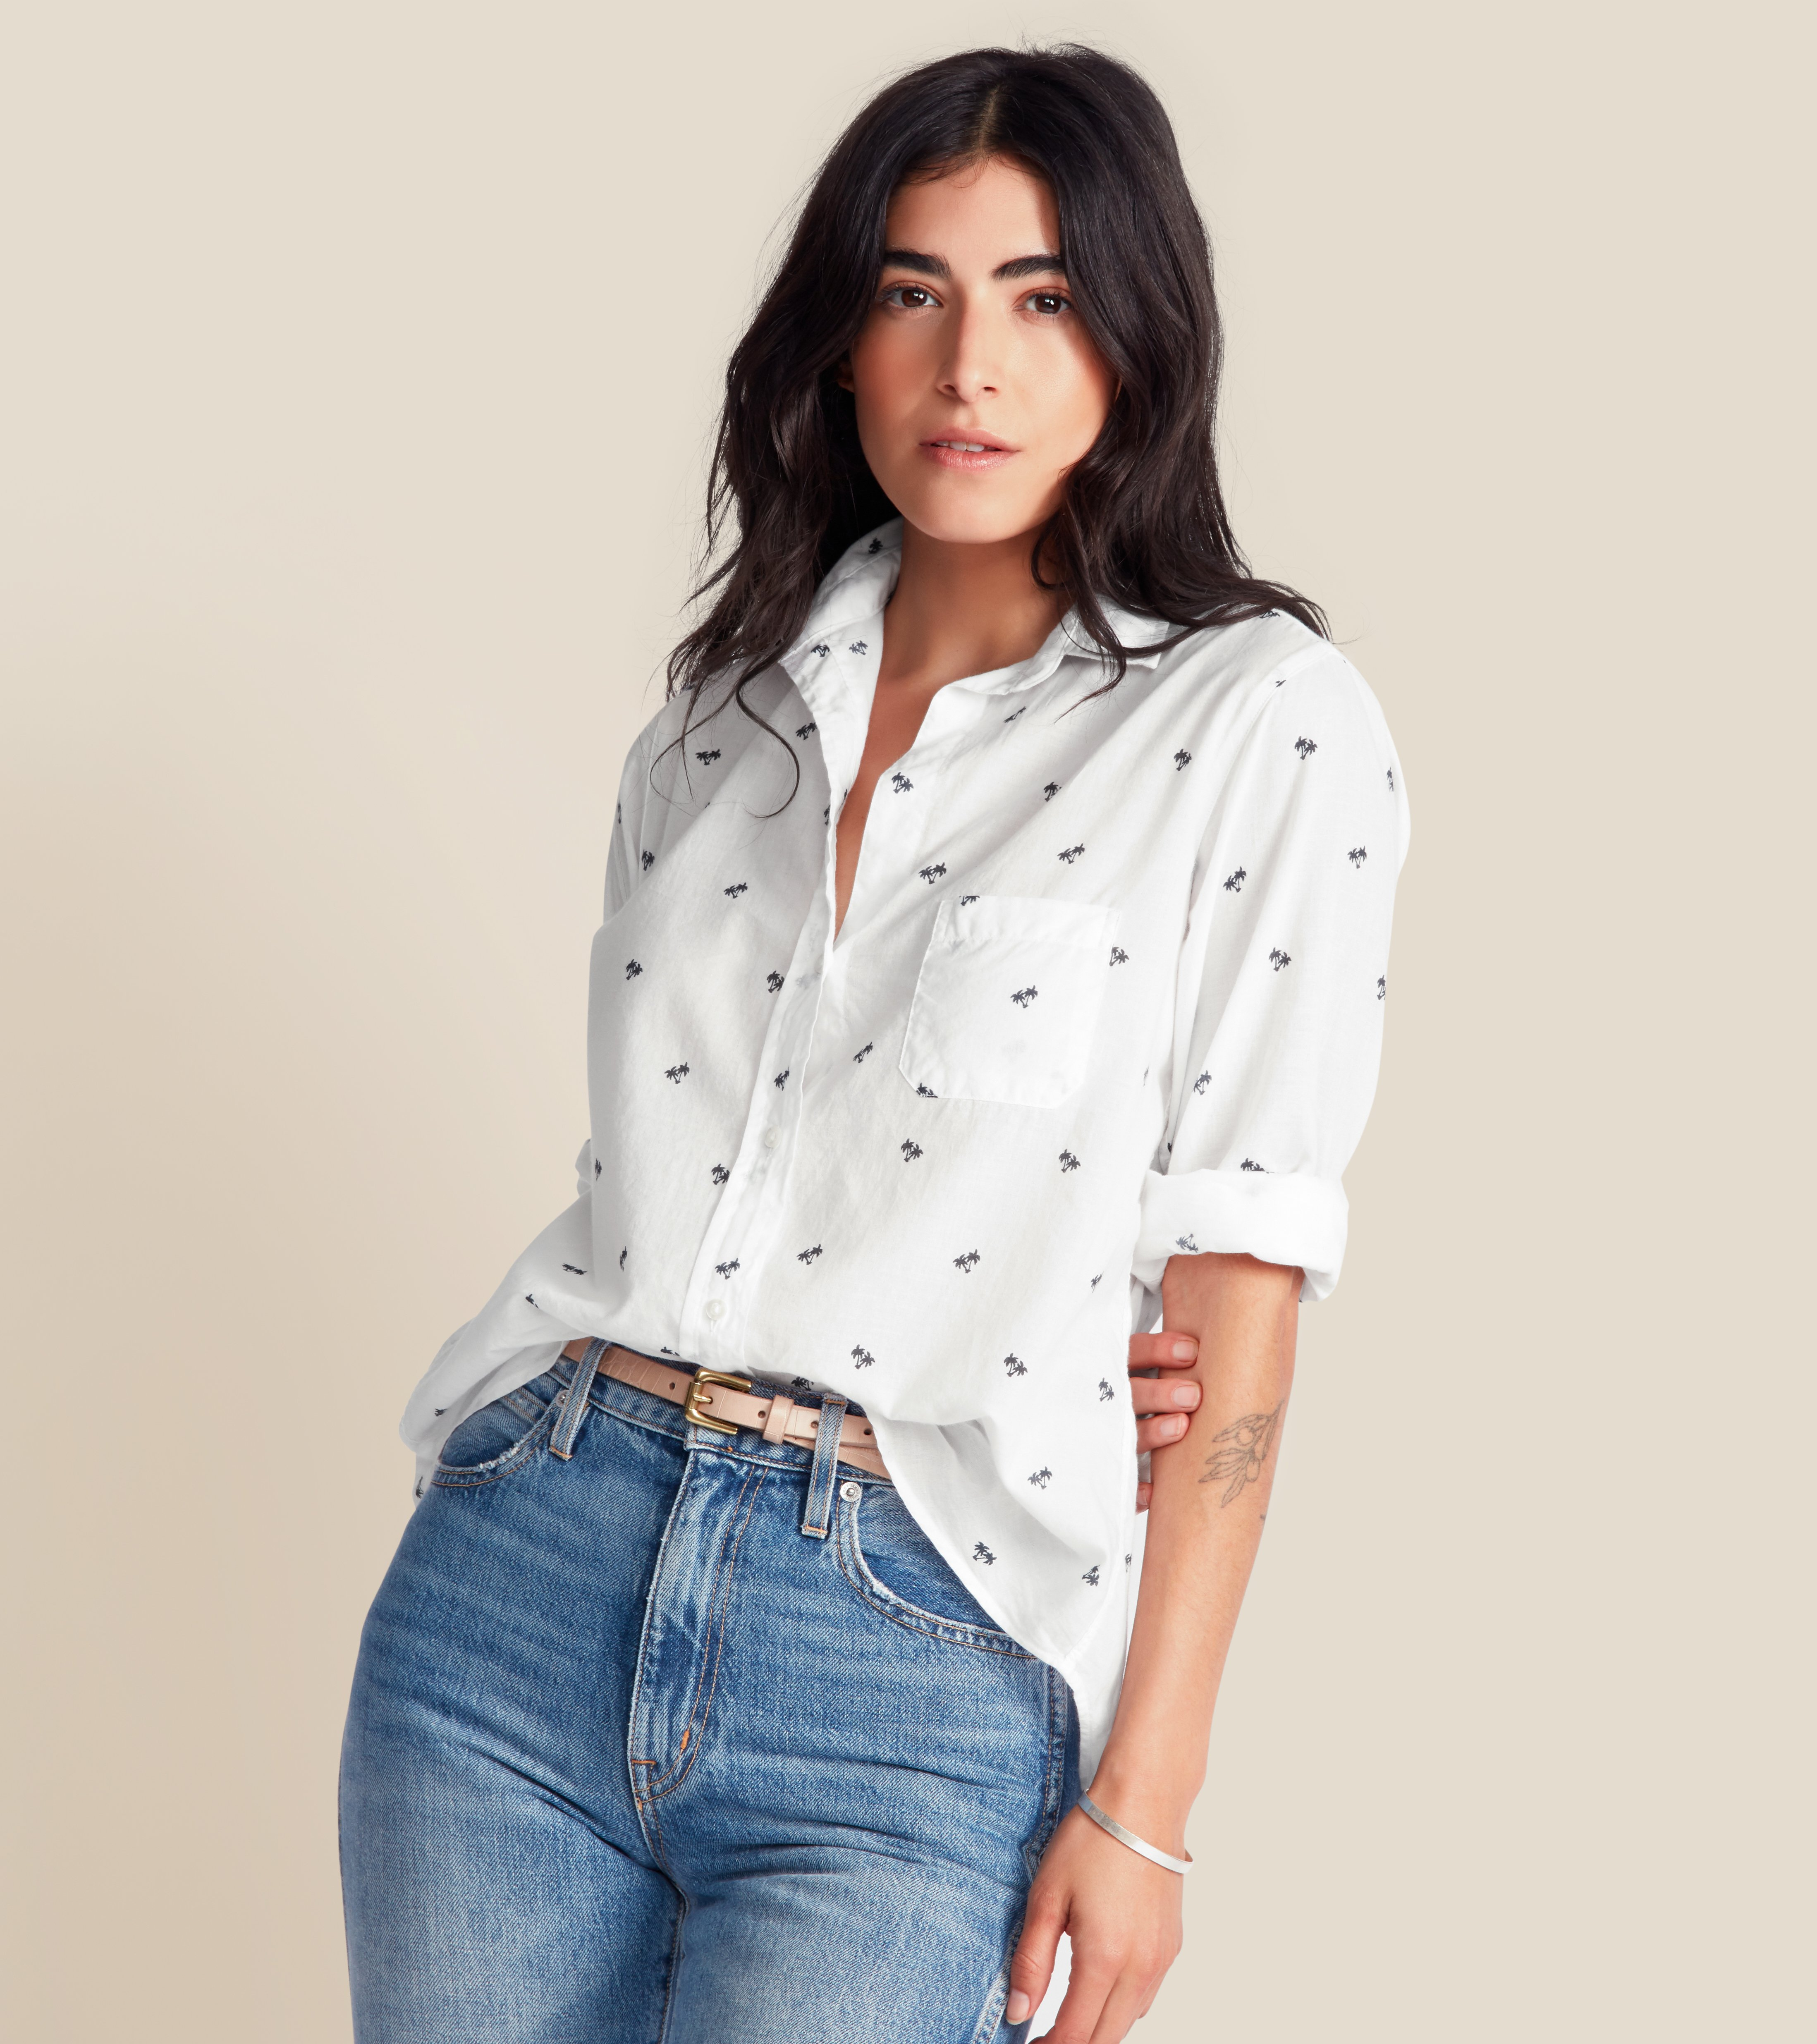 The Hero Button-Up Shirt White with Navy Palm, Tissue Cotton view 2